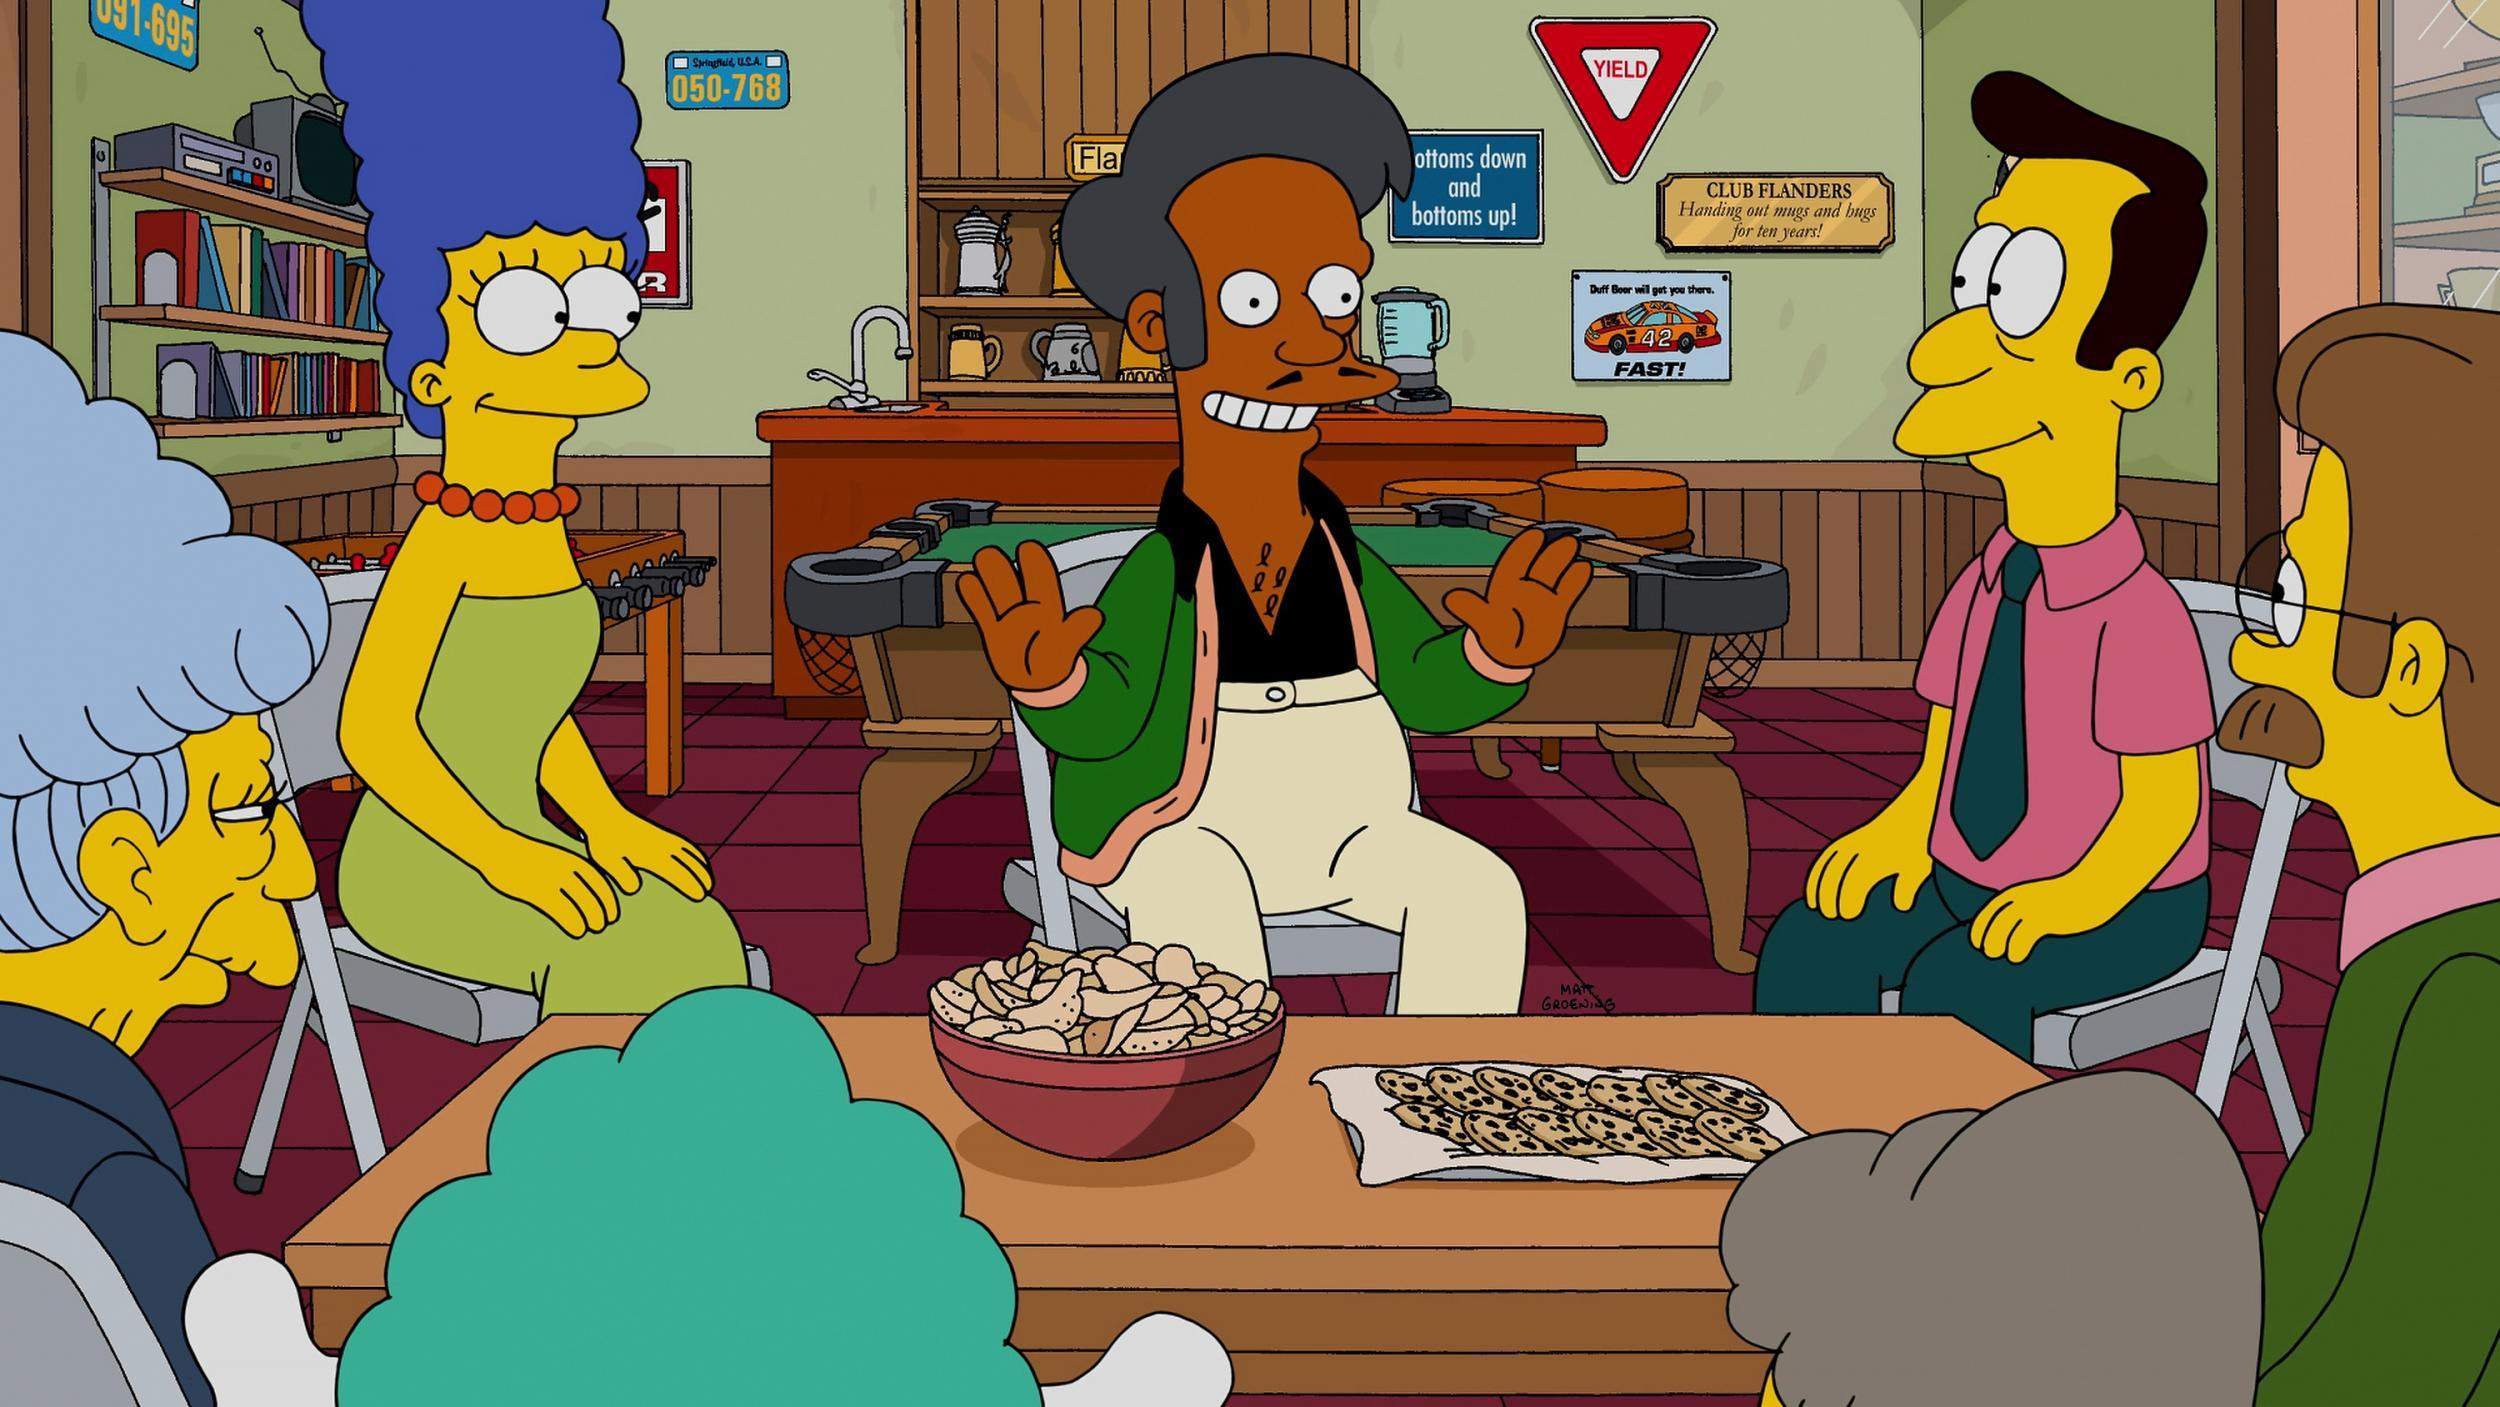 By refusing to understand why people find Apu offensive, The Simpsons became comedy at its worst